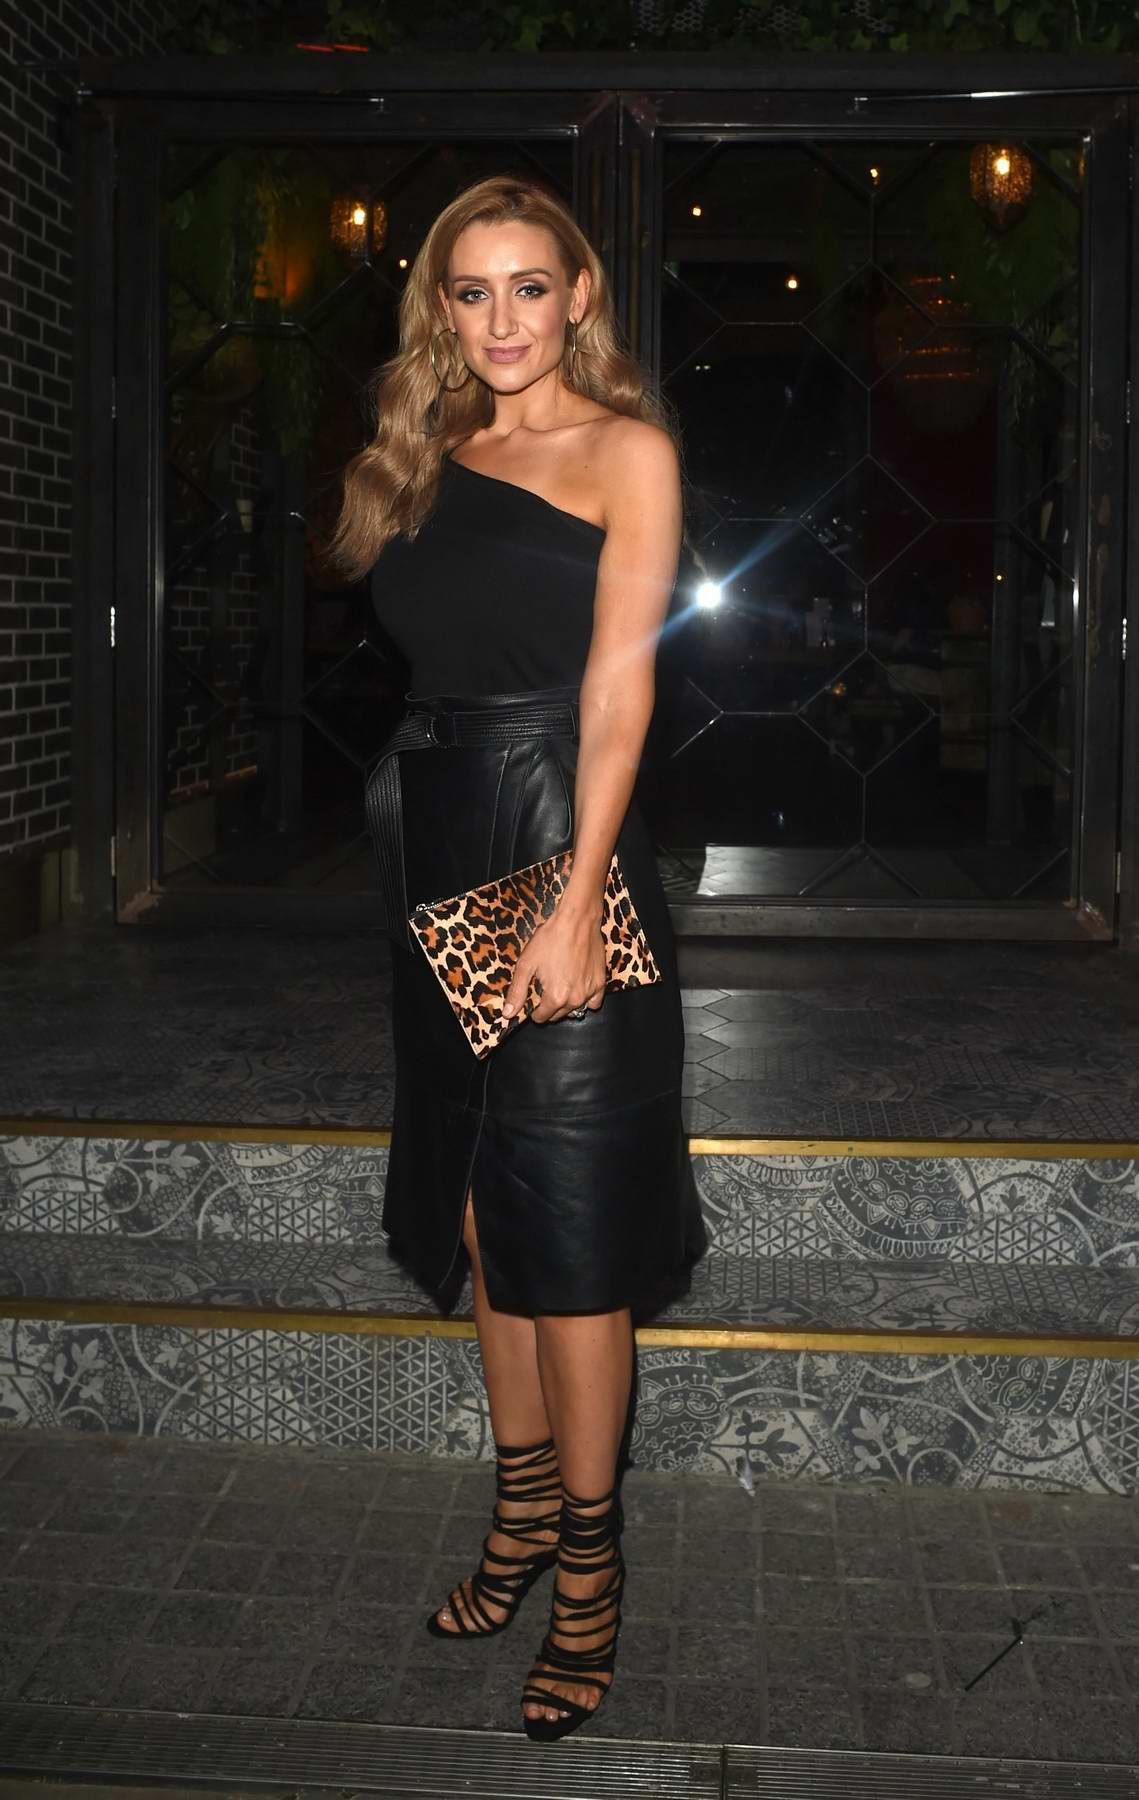 Catherine Tyldesley at her birthday party at Be Impossible in Manchester, UK